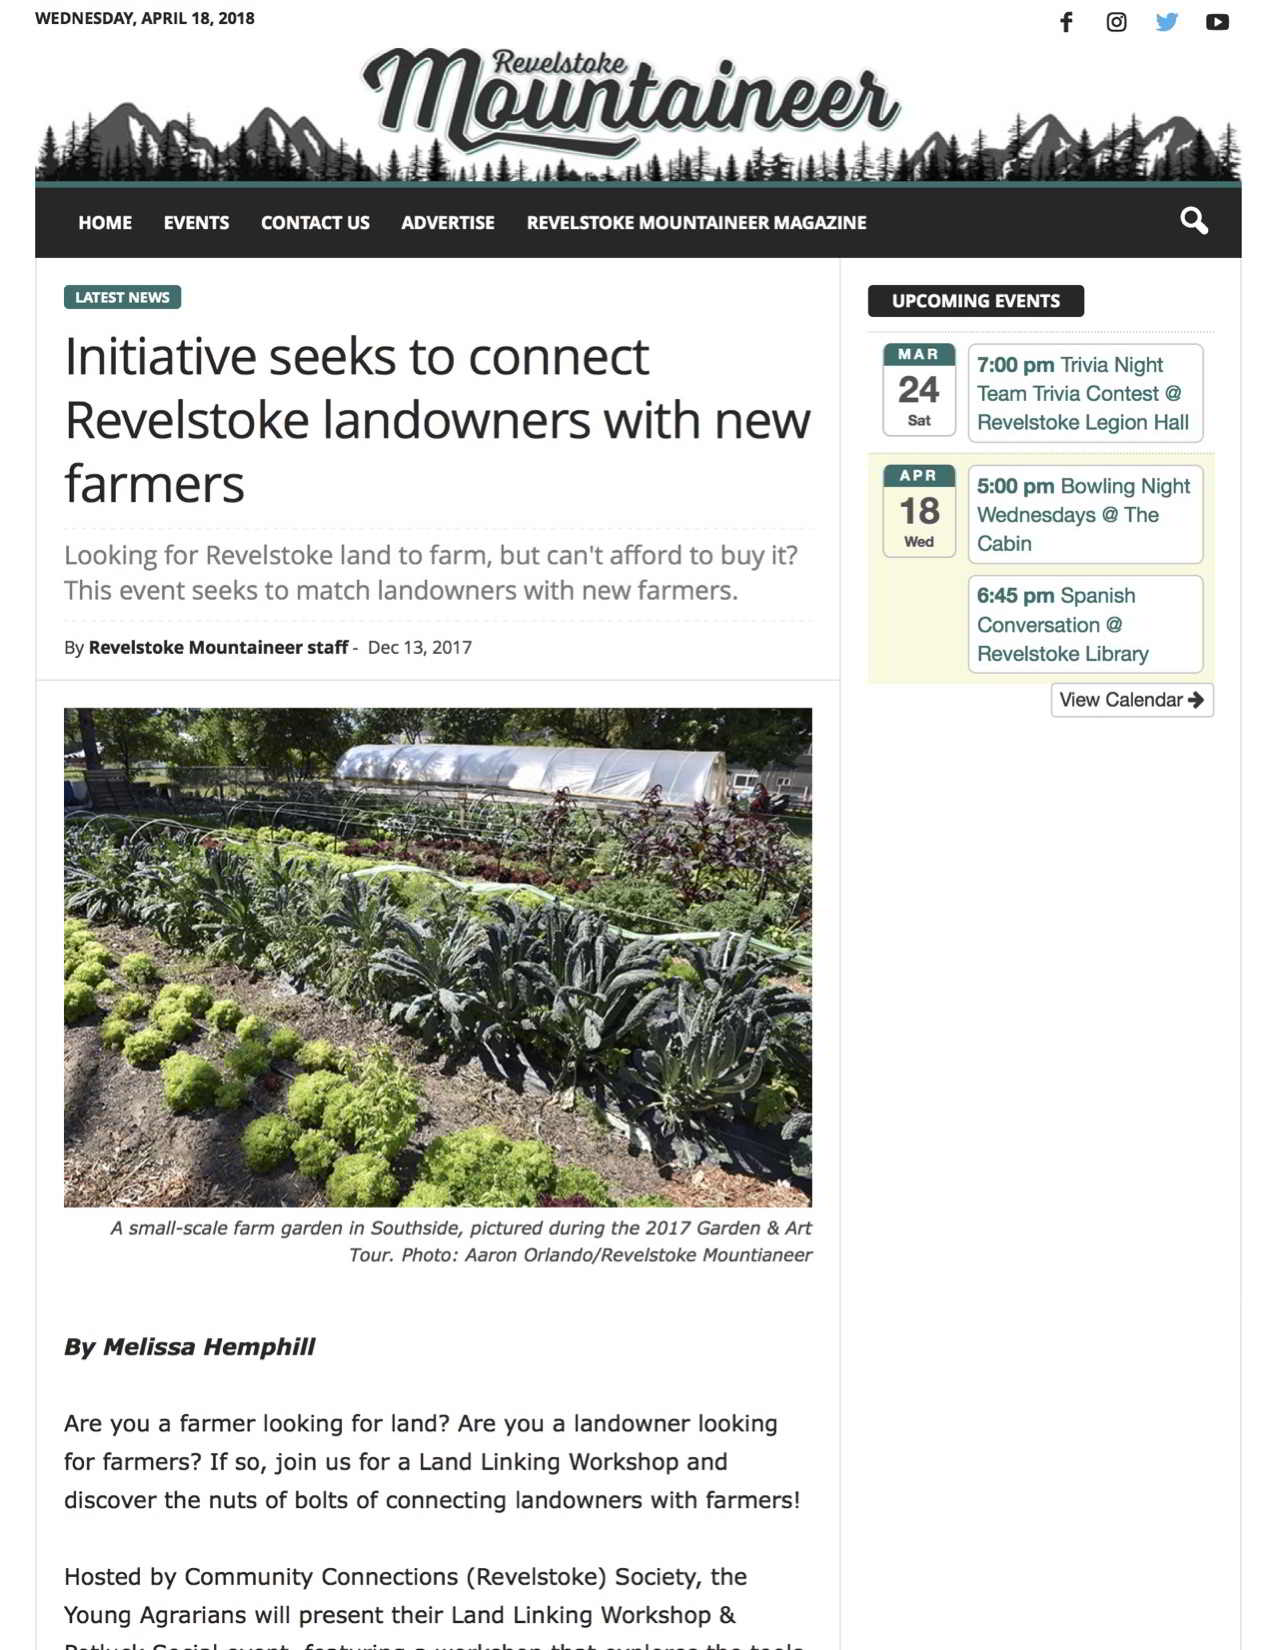 Initiative seeks to connect Revelstoke landowners with new farmers - Revelstoke Mountaineer (2018-04-18 12-11-34)